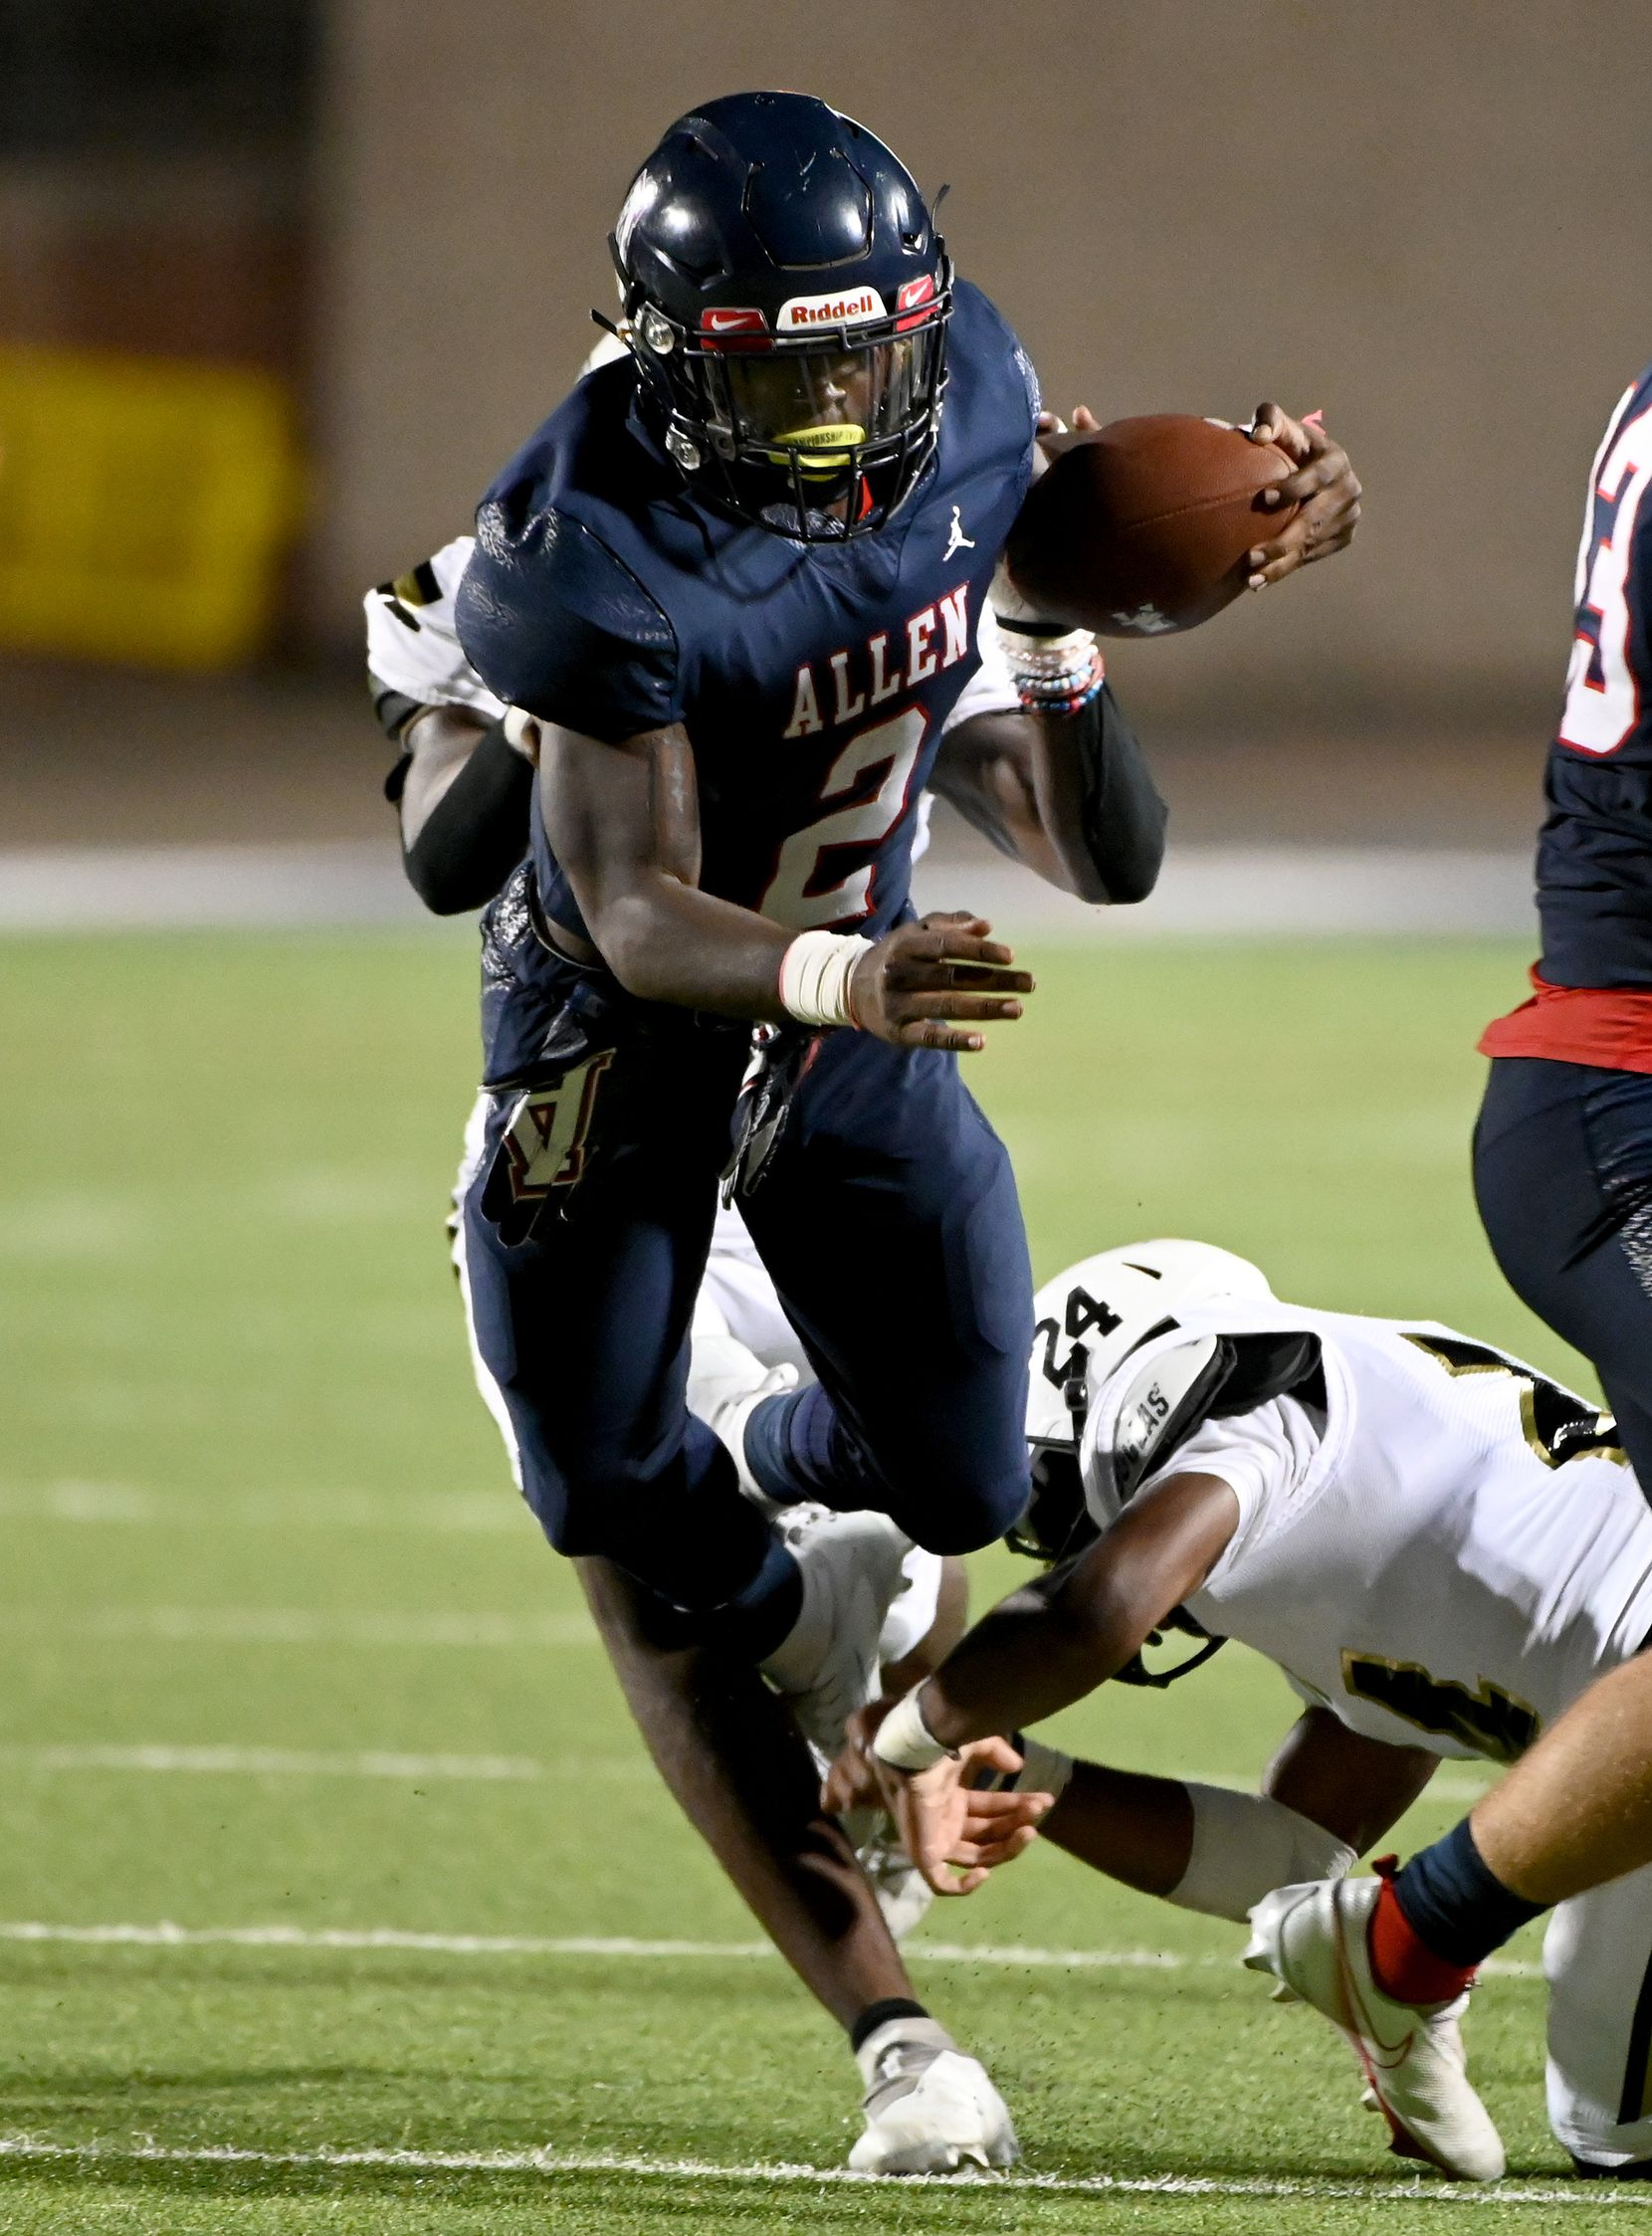 Allen's Jaylen Jenkins (2) runs through tackle attempts by Plano East's Daniel Oliver and Ahmari Malone (24) in the second half during a high school football game between Plano East and Allen, Friday, Aug. 27, 2021, in Allen, Texas. (Matt Strasen/Special Contributor)